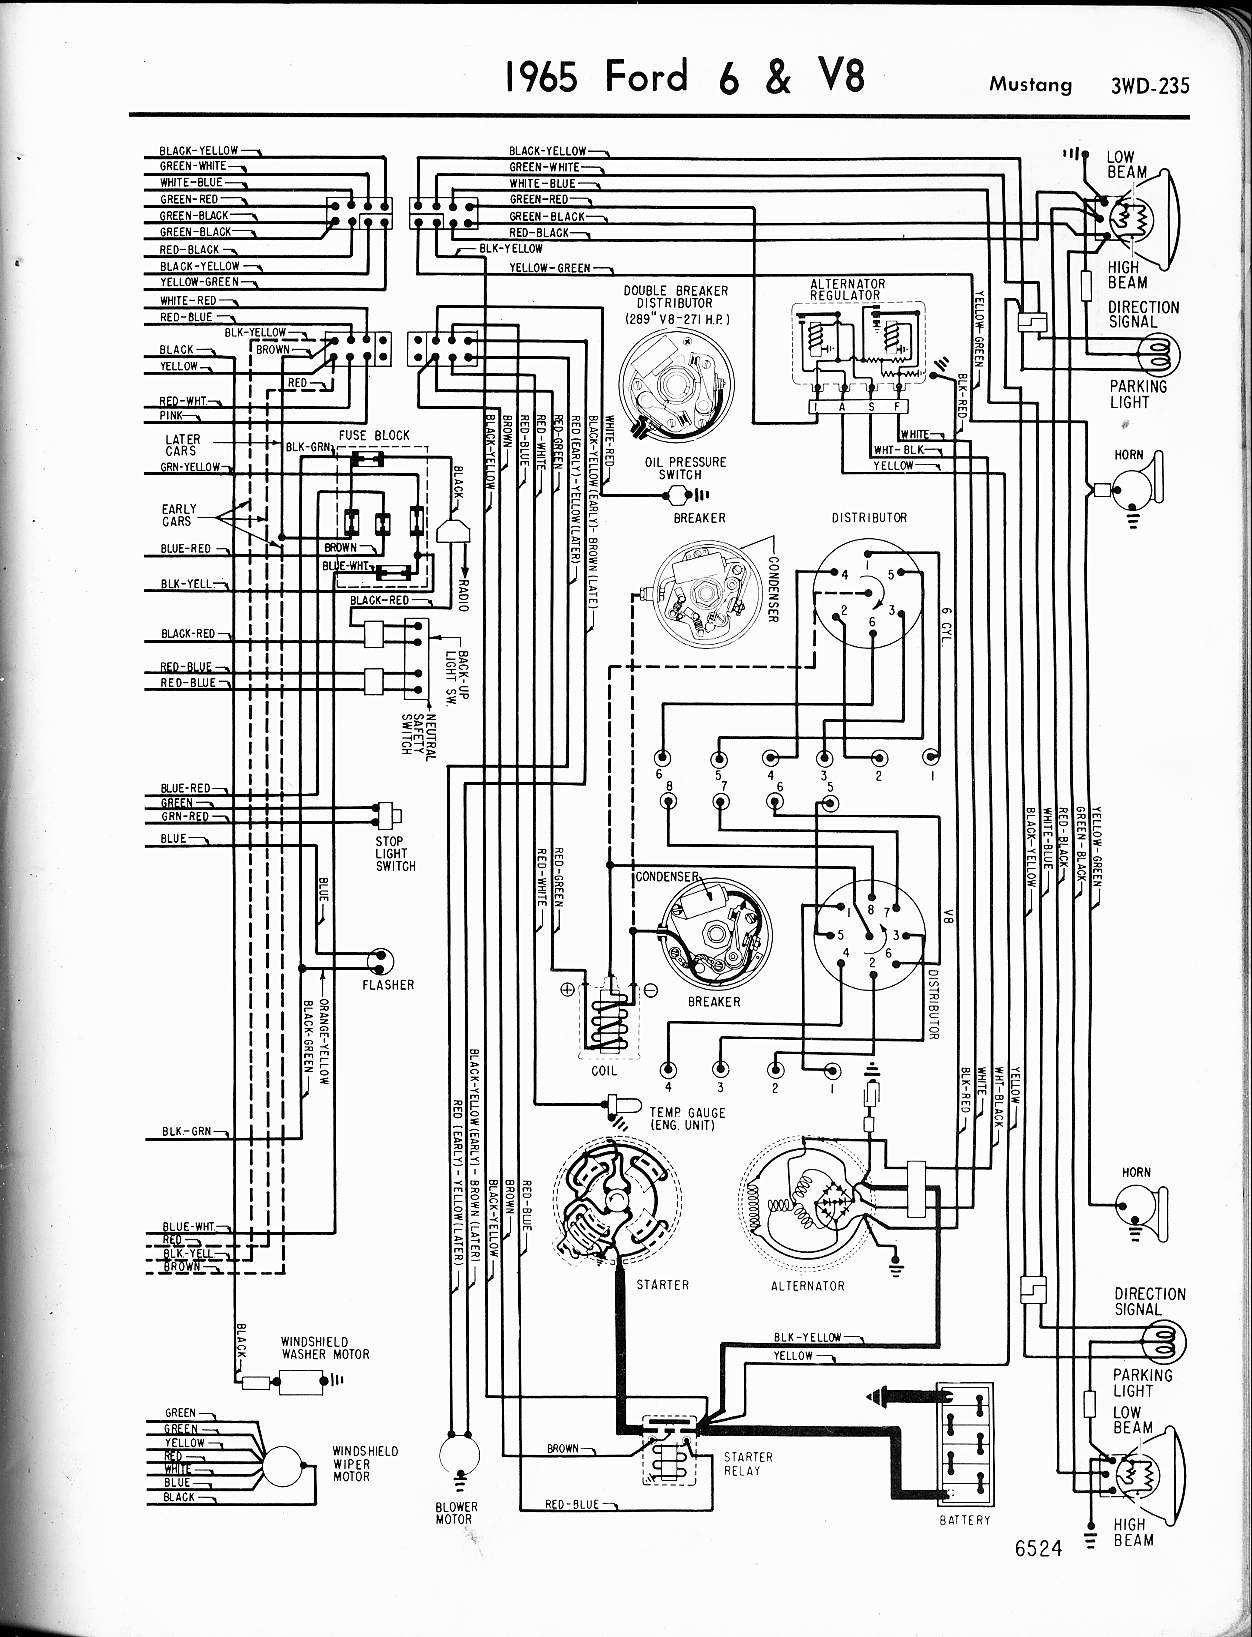 1965_mustang_wiring_2 ford diagrams ford mustang wiring diagram at arjmand.co